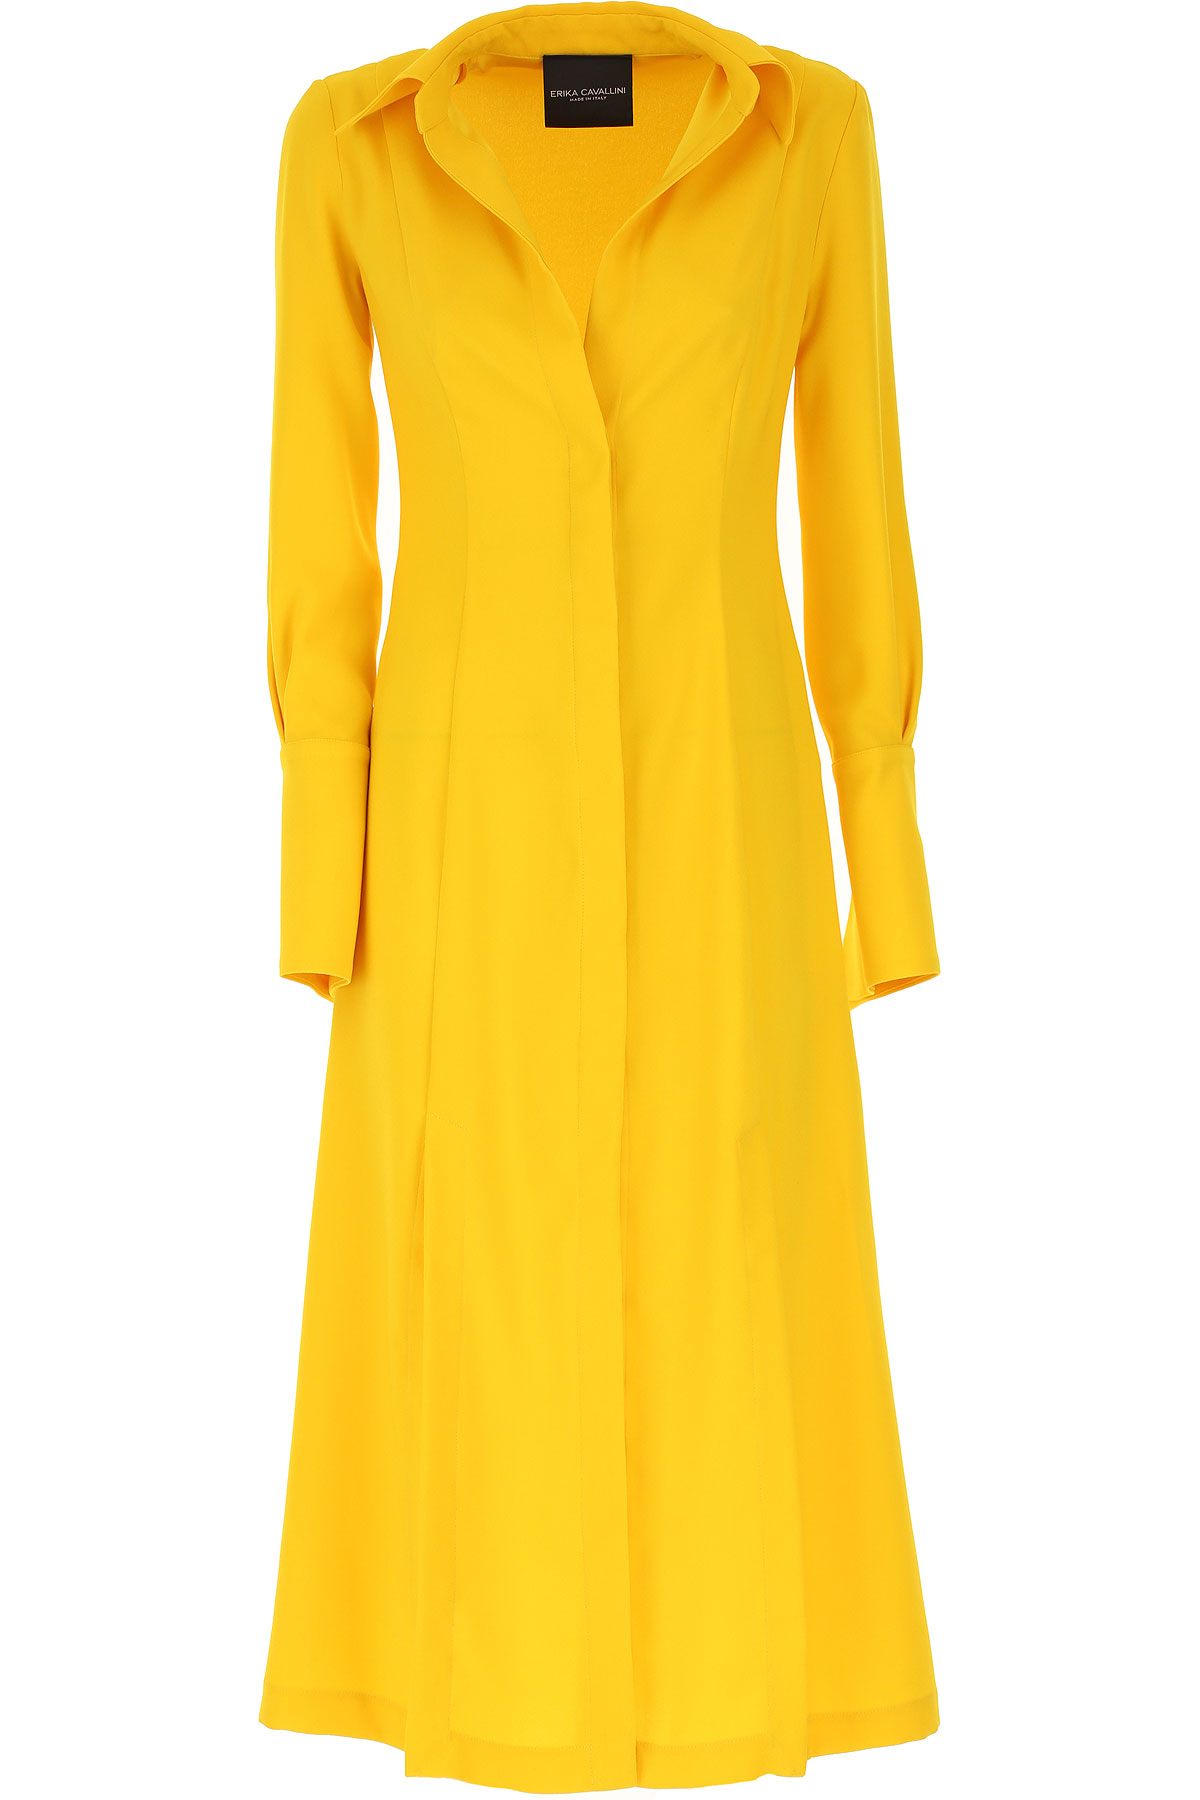 Erika Cavallini Dress for Women, Evening Cocktail Party On Sale, Yellow, polyestere, 2019, 2 4 6